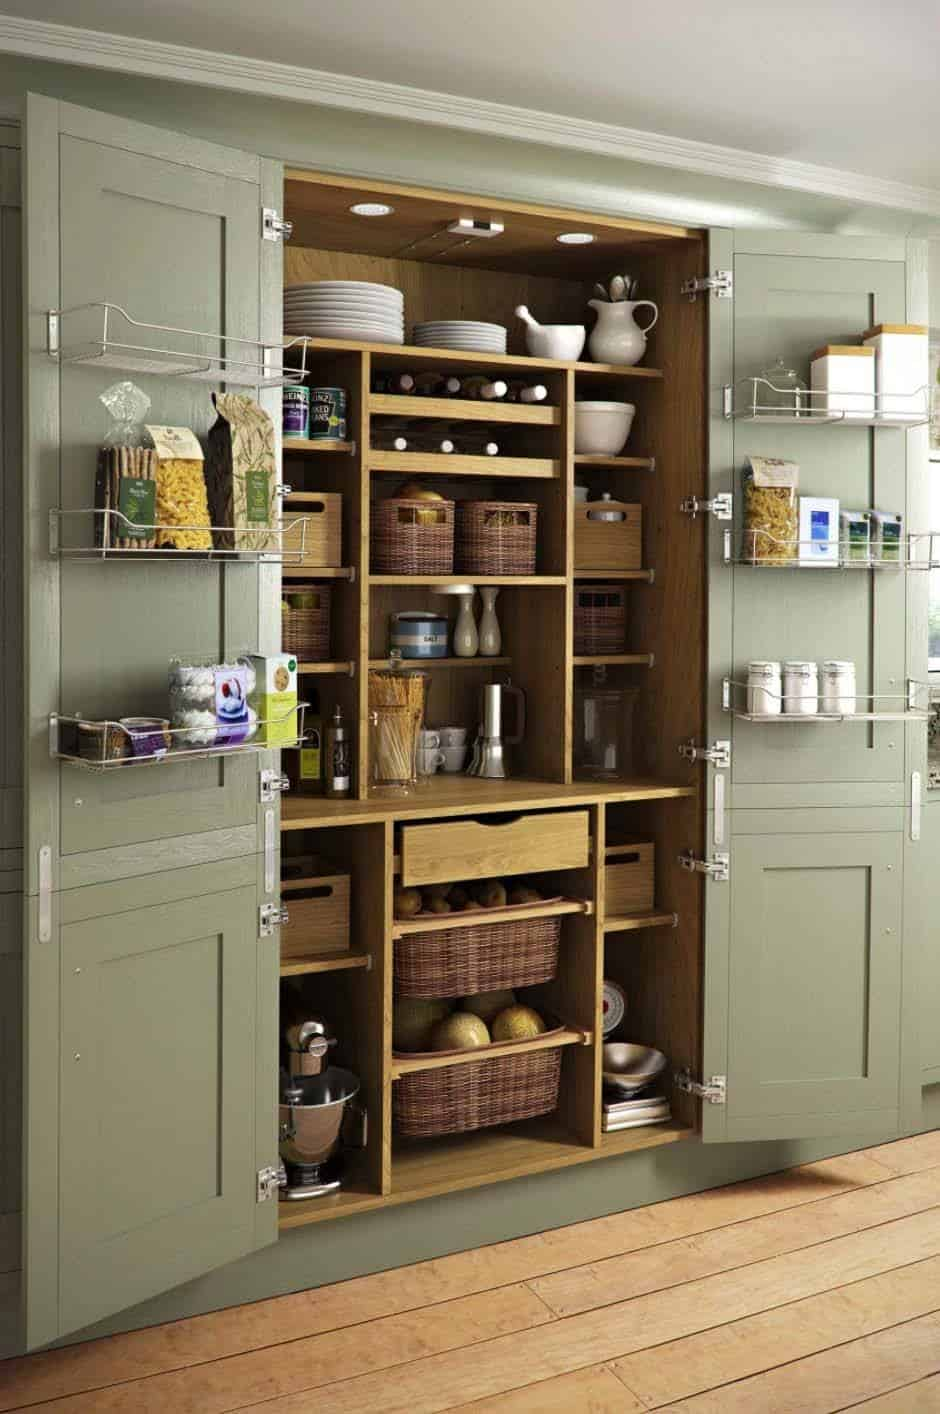 Brilliant 35 Clever Ideas To Help Organize Your Kitchen Pantry Interior Design Ideas Tzicisoteloinfo